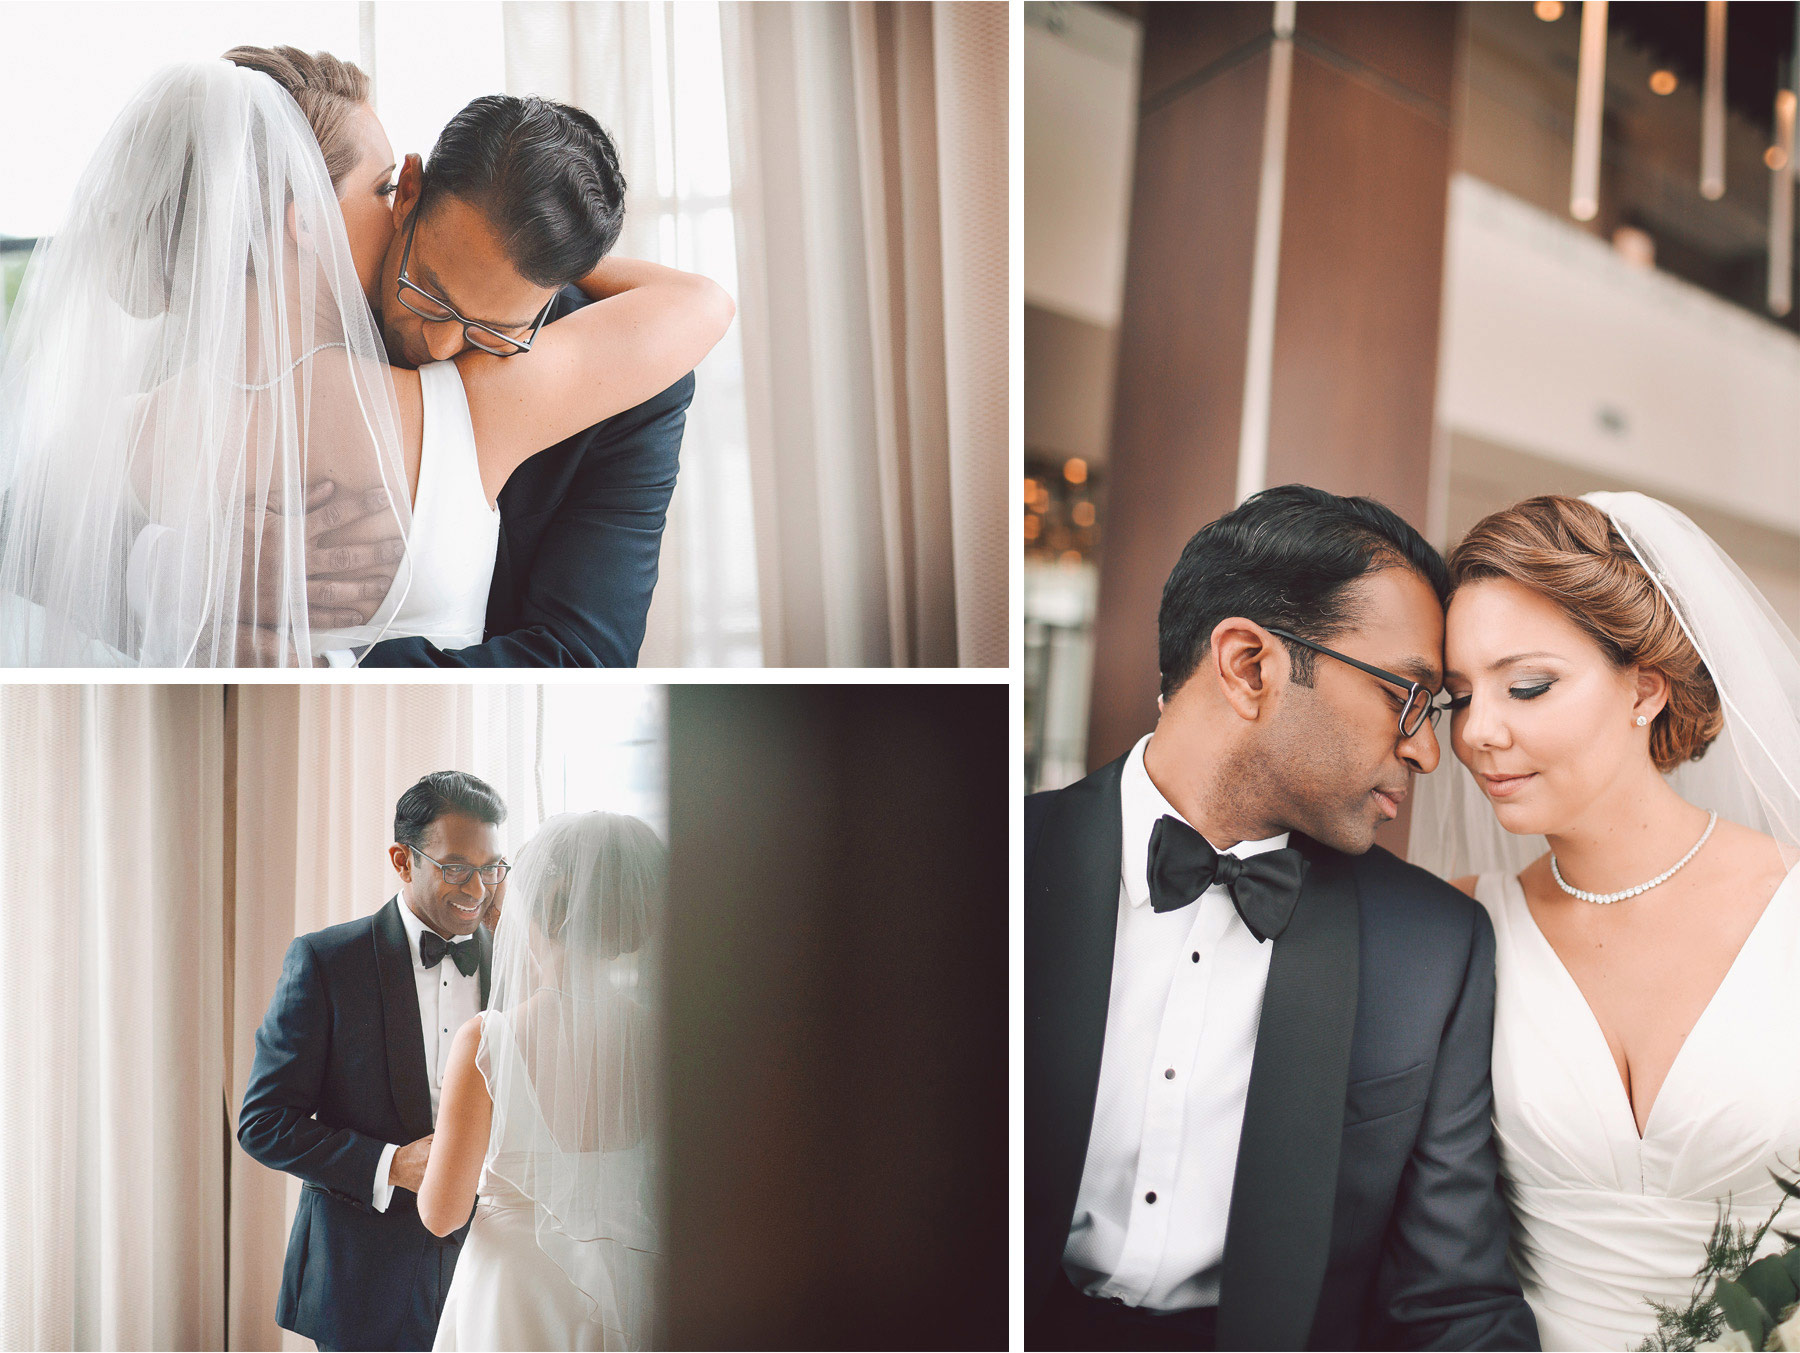 06-Bloomington-Minneapolis-Minnesota-Wedding-Photographer-by-Andrew-Vick-Photography-JW-Marriott-Mall-of-America-MOA-Spring-First-Meeting-Look-Bride-Groom-Hotel-Embrace-Kiss-Vintage-Rachel-and-Venu.jpg